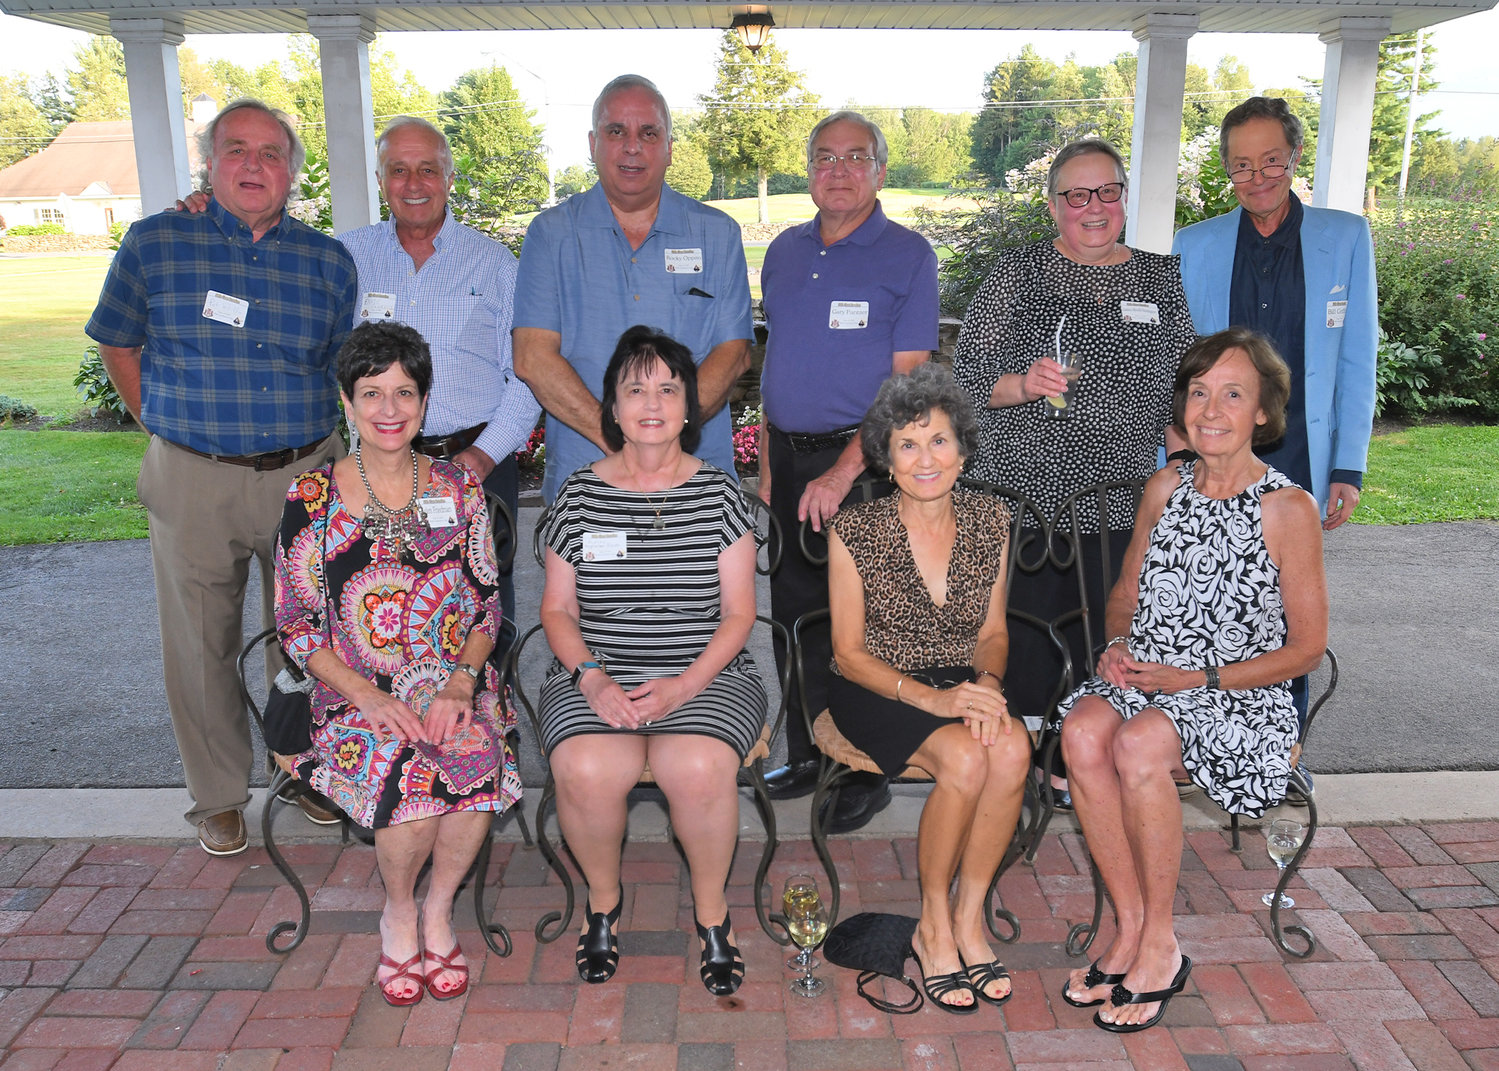 REKINDLING OLD FRIENDSHIPS — Harkening back to their days at the old Rome Free Academy on Turin Street and also making new memories were members of the Class of 1969, who gathered for their 50-year-reunion on Friday.  Among those attending, from left, front row:  Helen Friedman, St. Louis, Mo.; Andrea Guglielmo Bocko, Painted Post;  Susan Stromei Berg, Willamsburg, Va.; and Milena Jovanovitch, Bethel, Conn.; back row:  Patrick Pirillo;  Ernie Panasci; Rocky Oppito, Binghamton; Gary Pantzer, Oneida; Justina Micelli Horsington, Rochester; and William Griffiths.